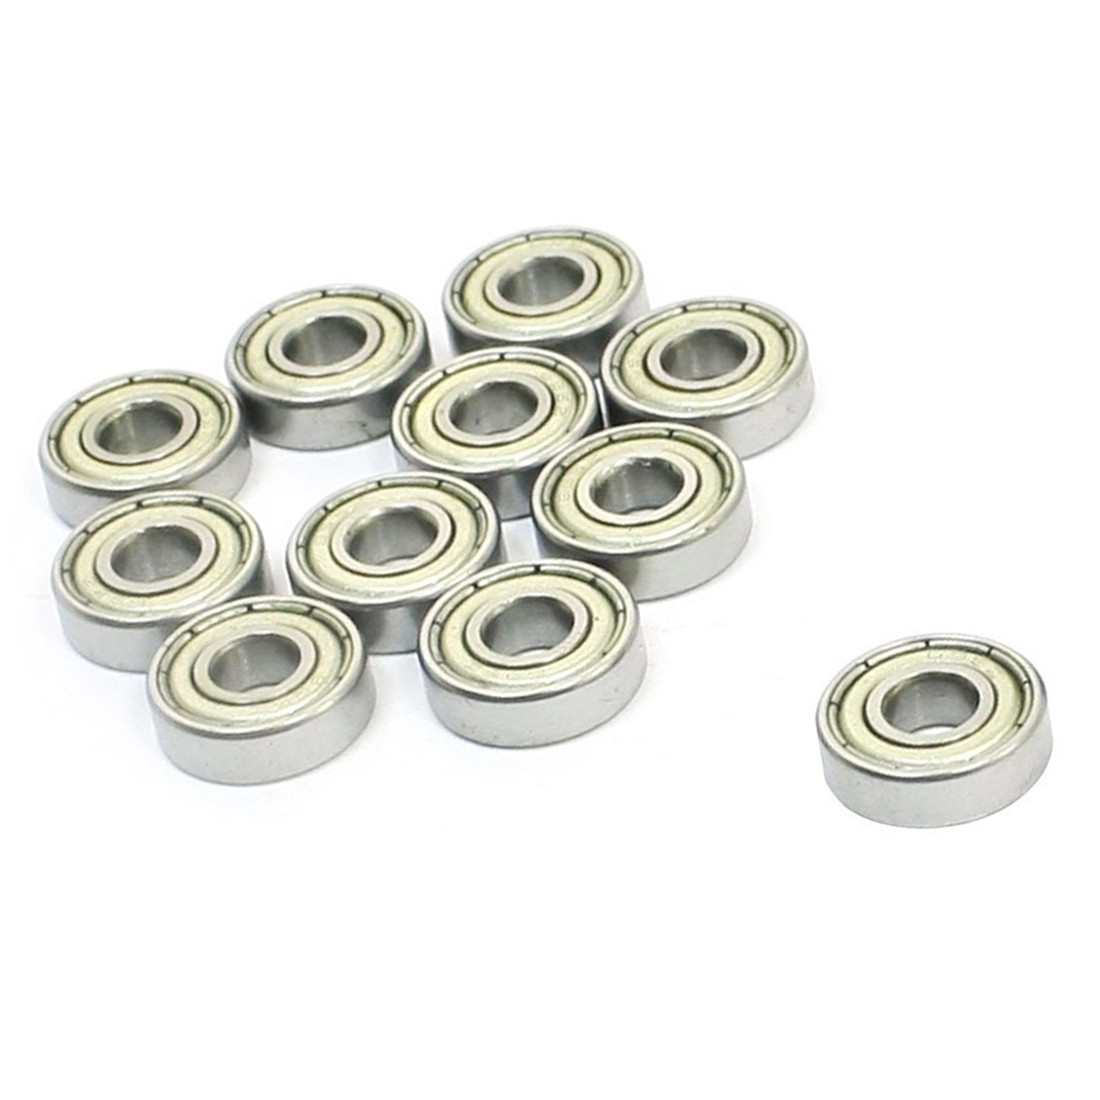 10pcs-695z-5mm-x-13mm-x-4mm-mini-deep-groove-ball-bearing-ball-bearing-for-electric-motors-wheel-bearings-agriculture-conveyors